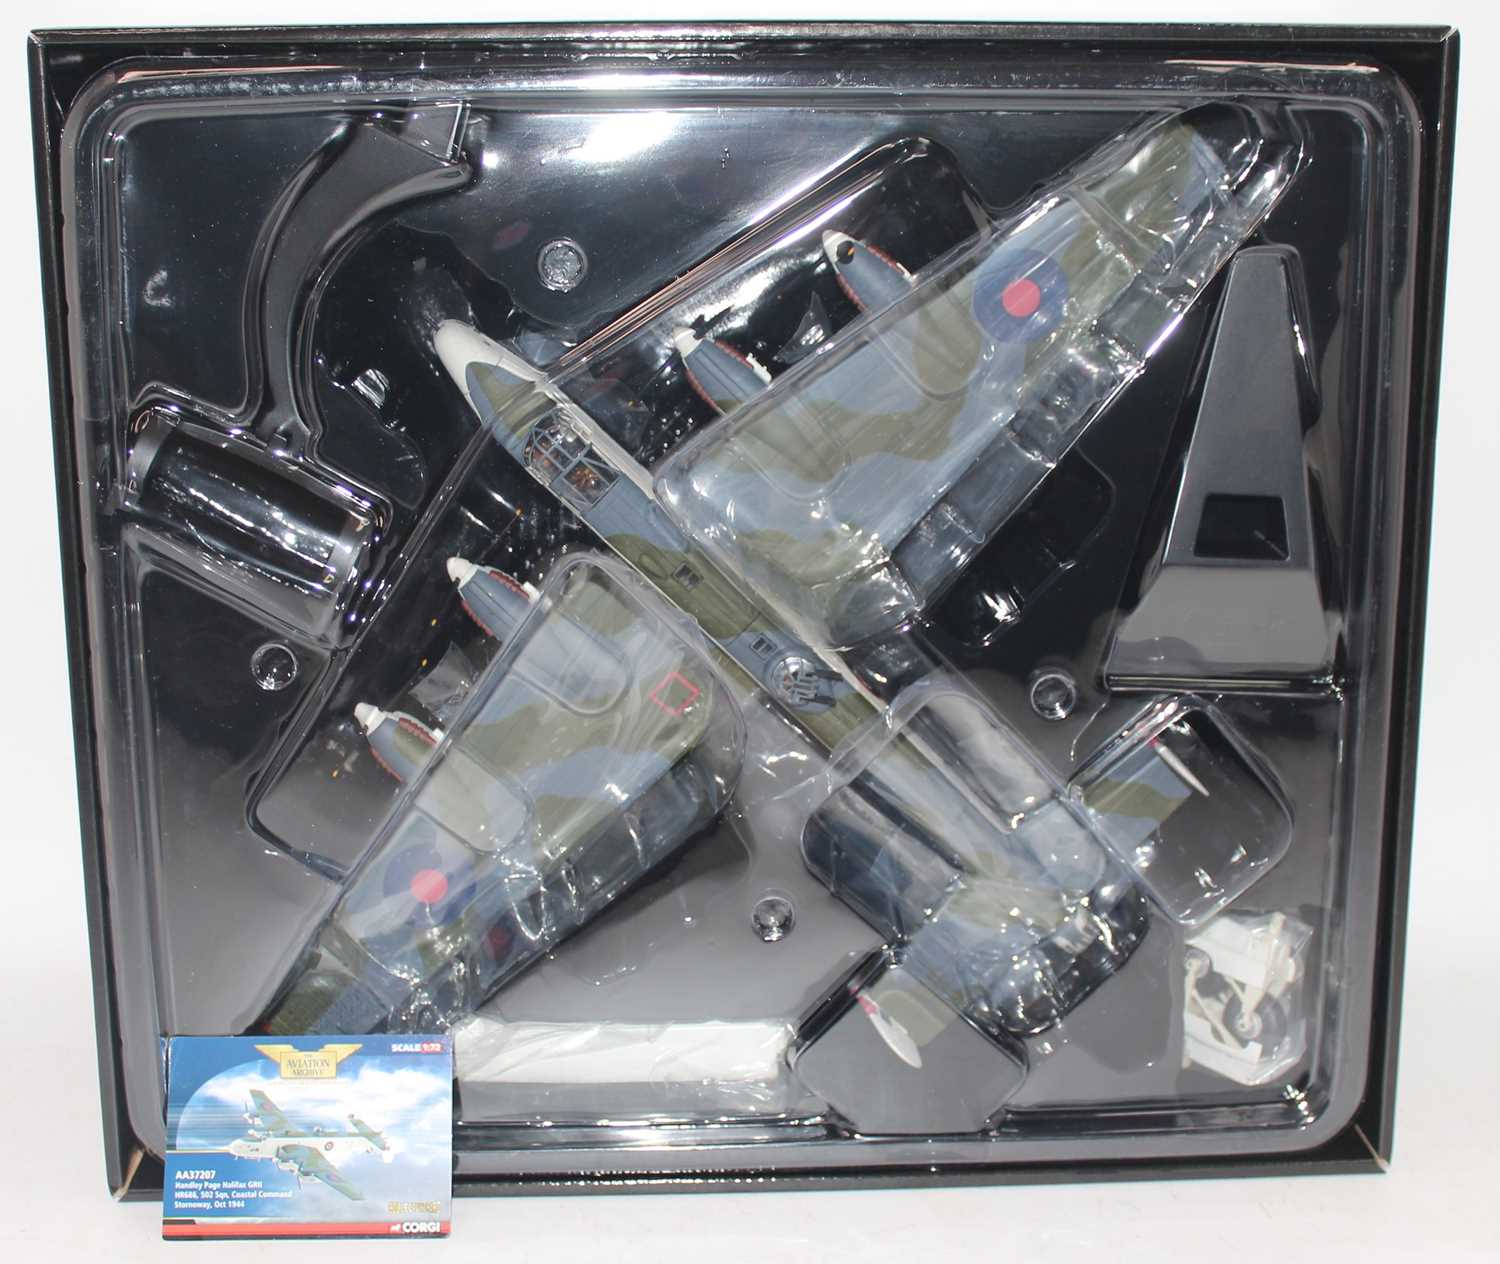 A Corgi Aviation Archive model No. AA37207 1/72 scale limited edition model of a Handley Page - Image 2 of 2